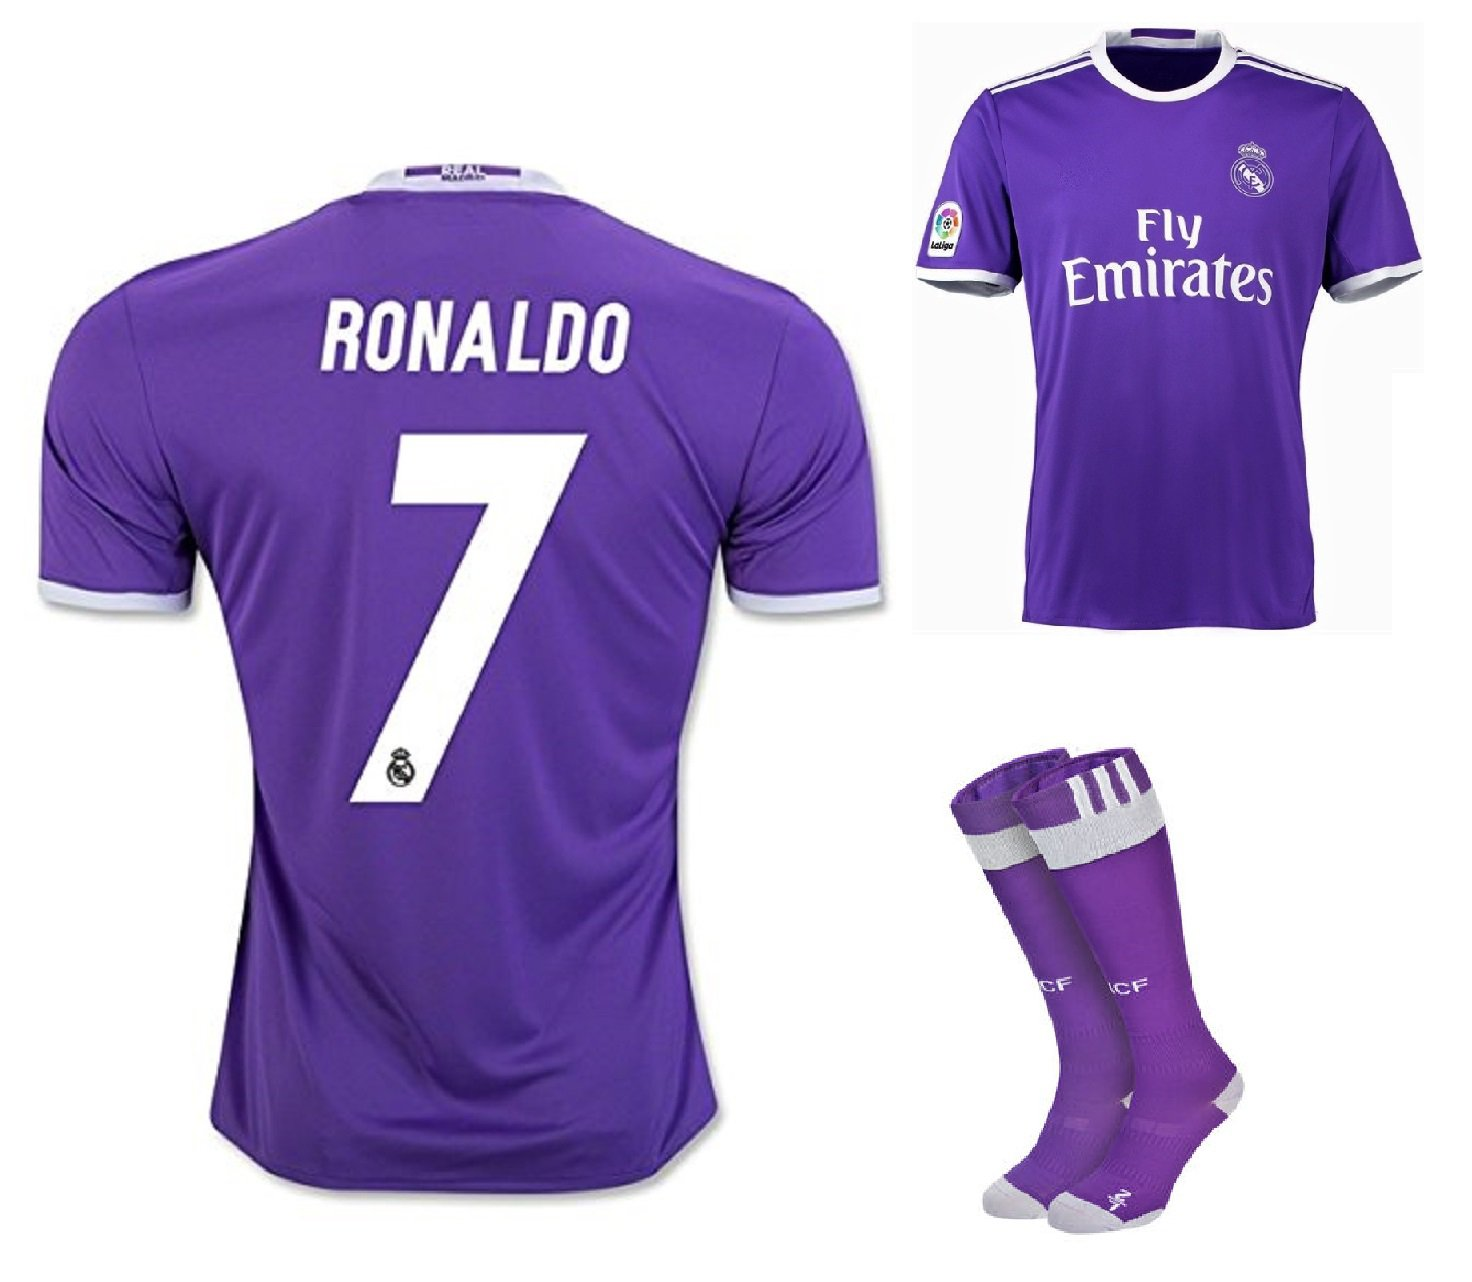 Real Madrid #7 Ronaldo 2nd Away jersey with shorts & socks kid youth for age 6-8